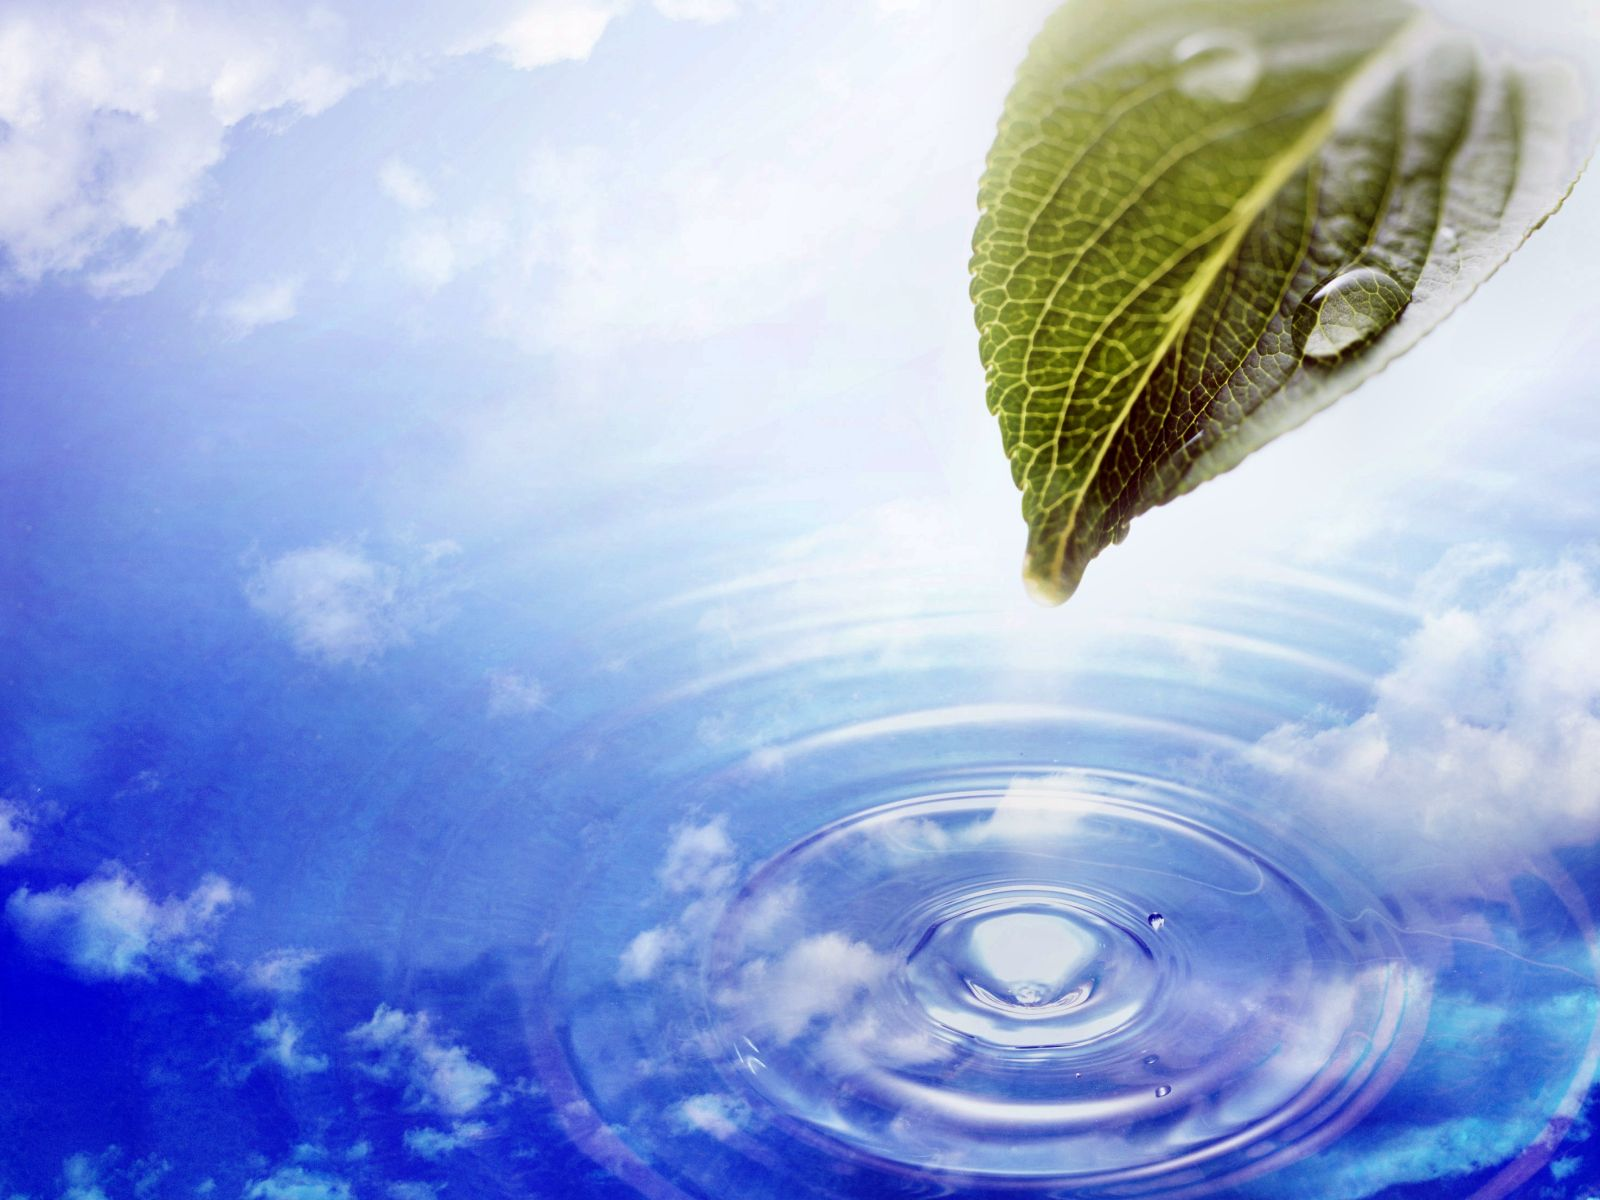 Animated wallpaper windows 7 See To World 1600x1200